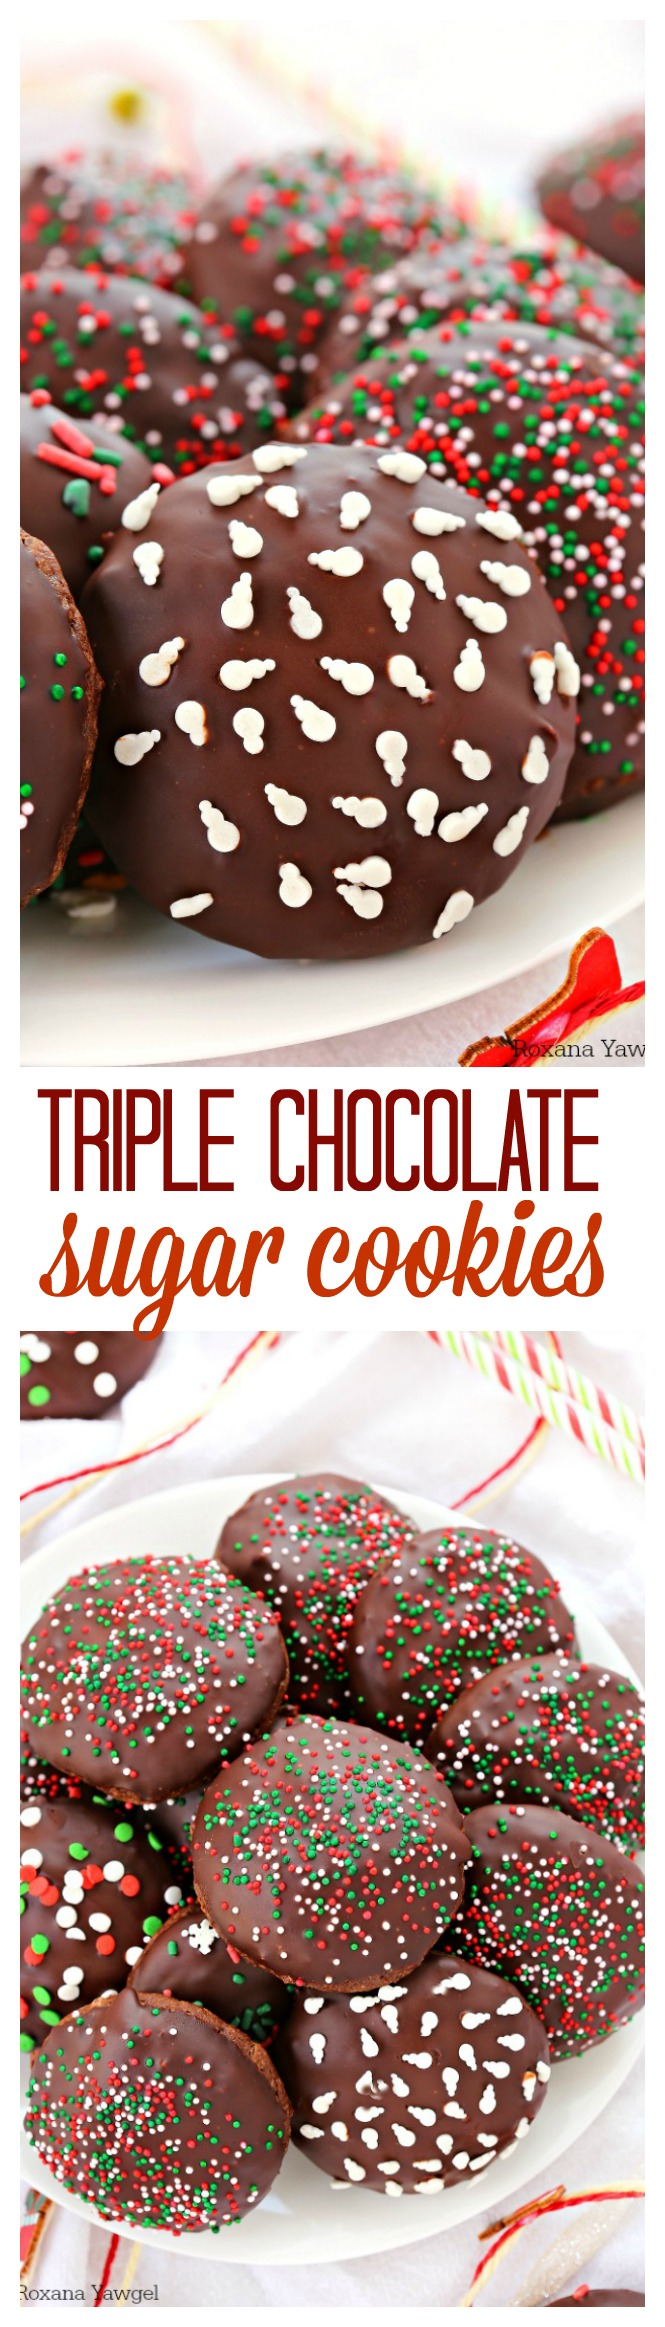 Quick and easy to make, these triple chocolate sugar cookies have a rich chocolate taste, are soft and chewy and packed with mini chocolate chips! No need to chill the cookie dough! Ready in minutes!